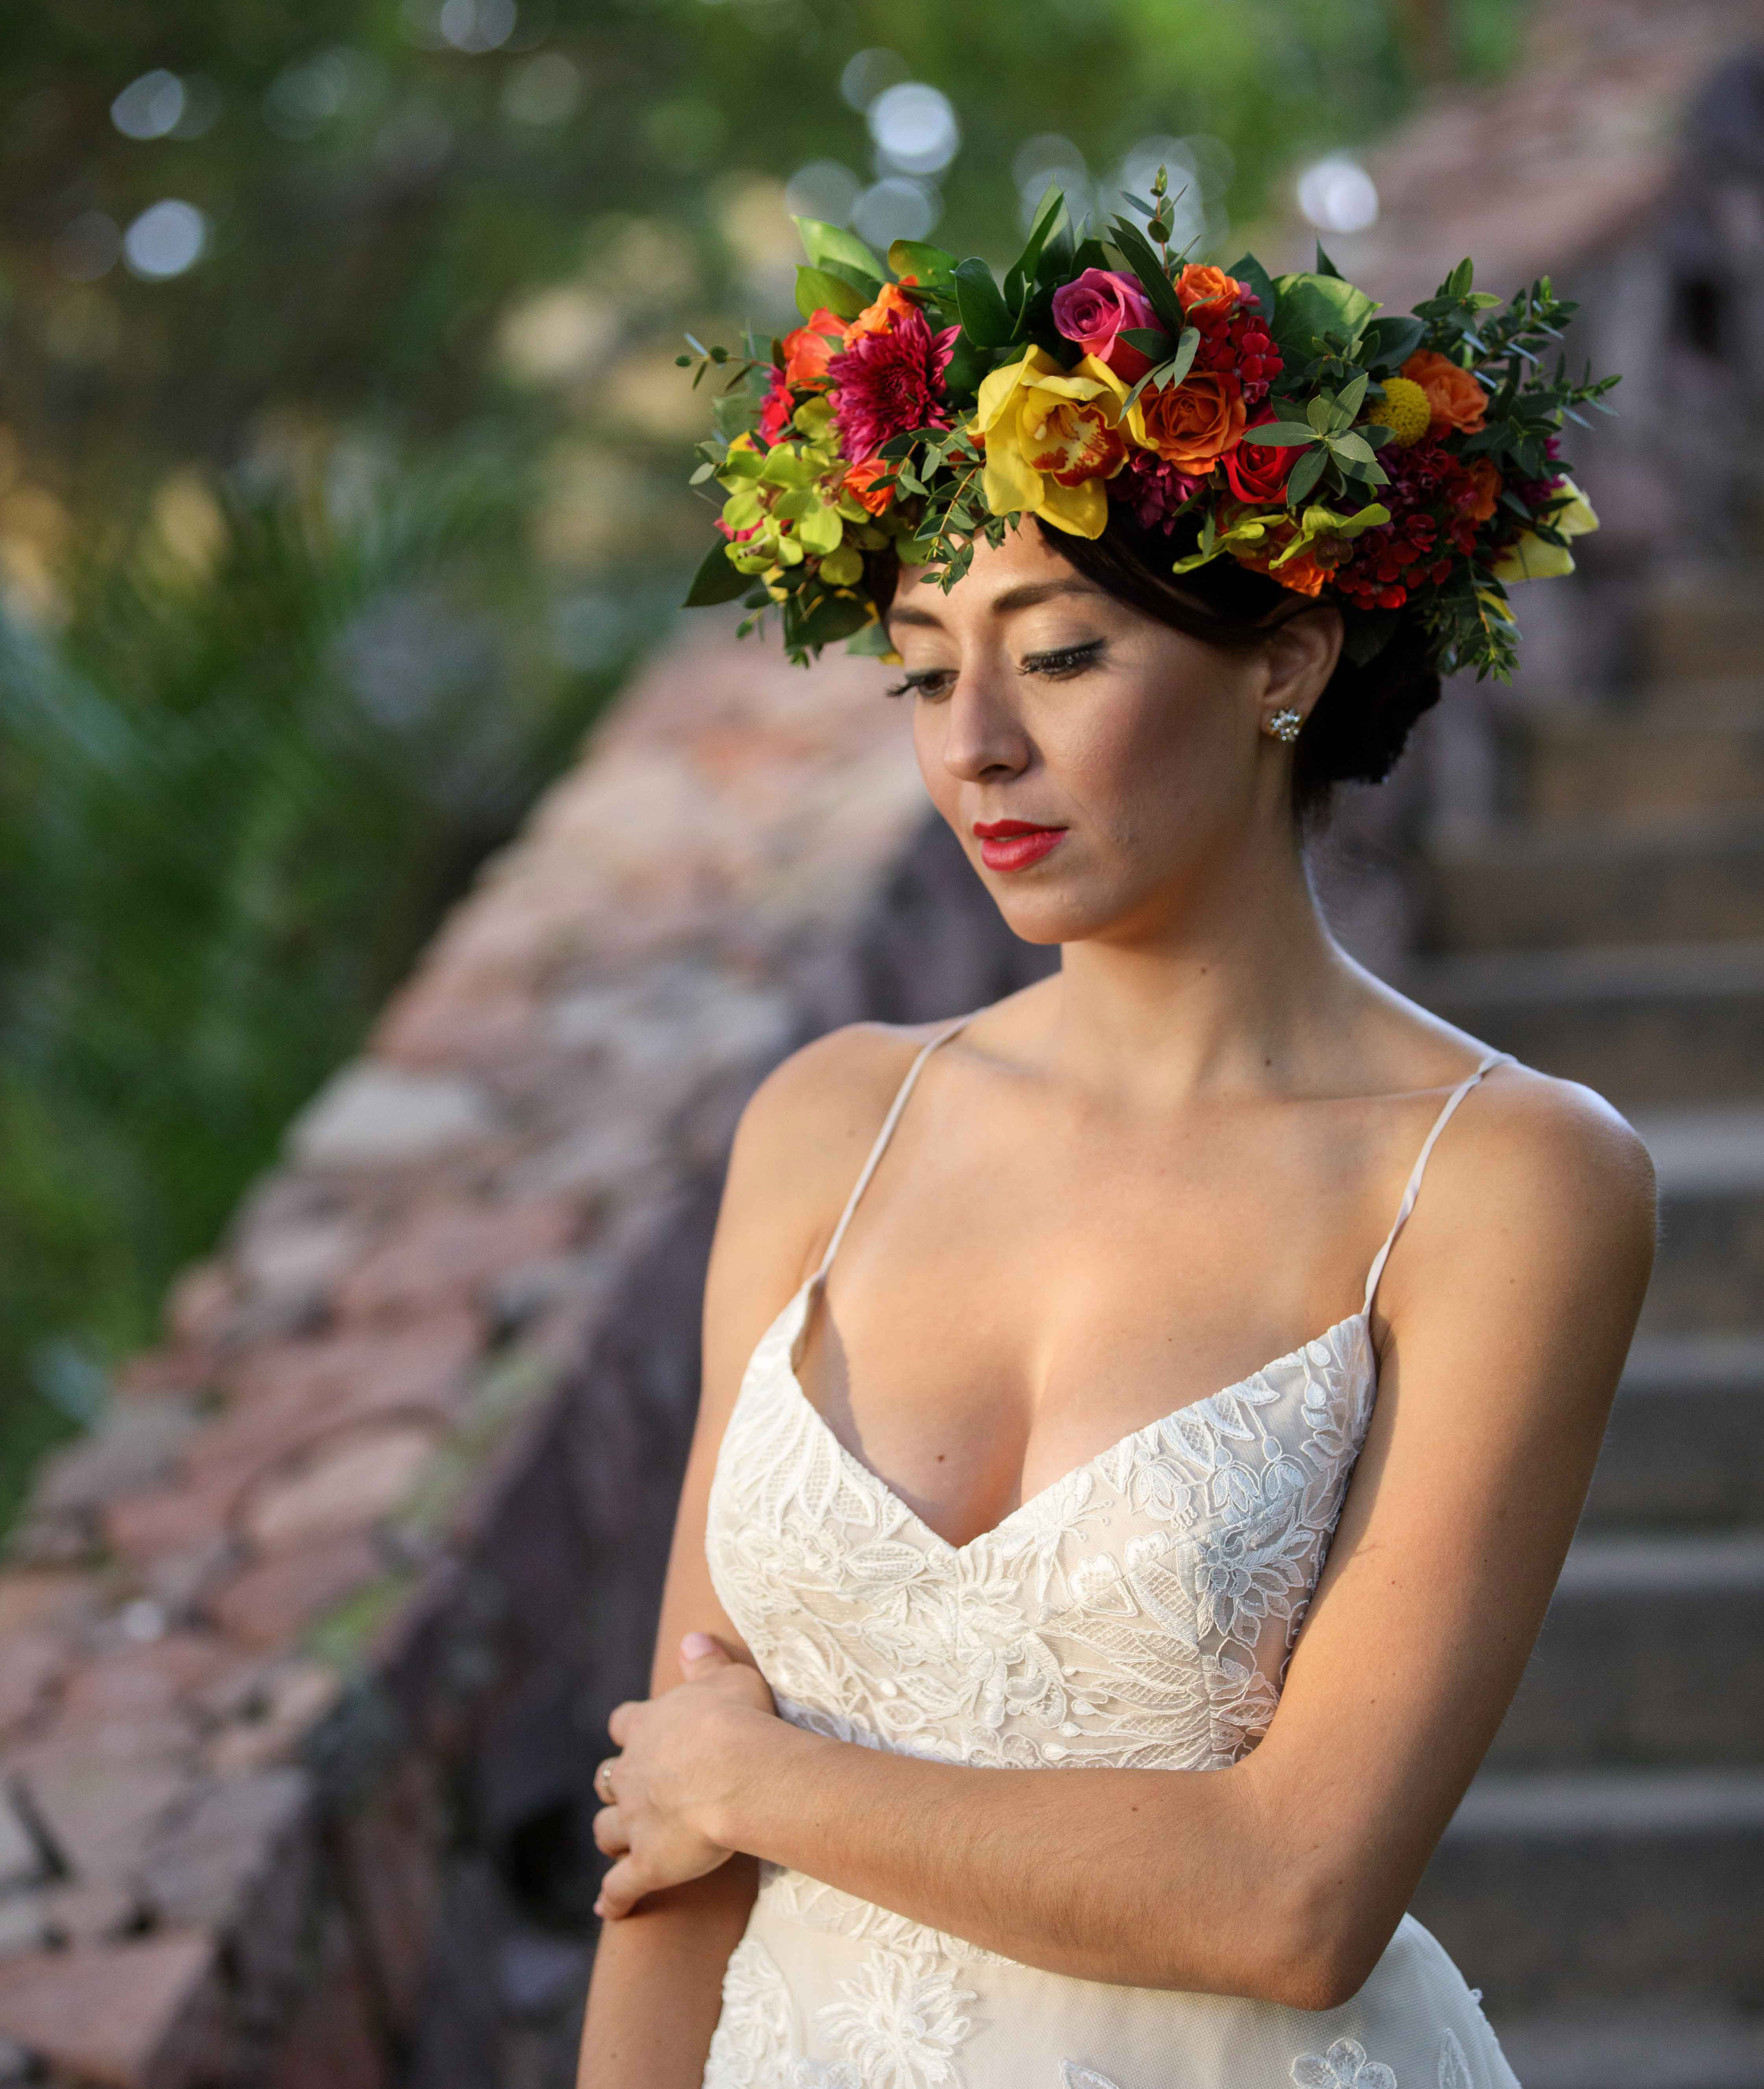 10 beautiful flower crown ideas for boho chic brides inside weddings tropical bridal flower crown with pink orange yellow flowers inspired by frida kahlo izmirmasajfo